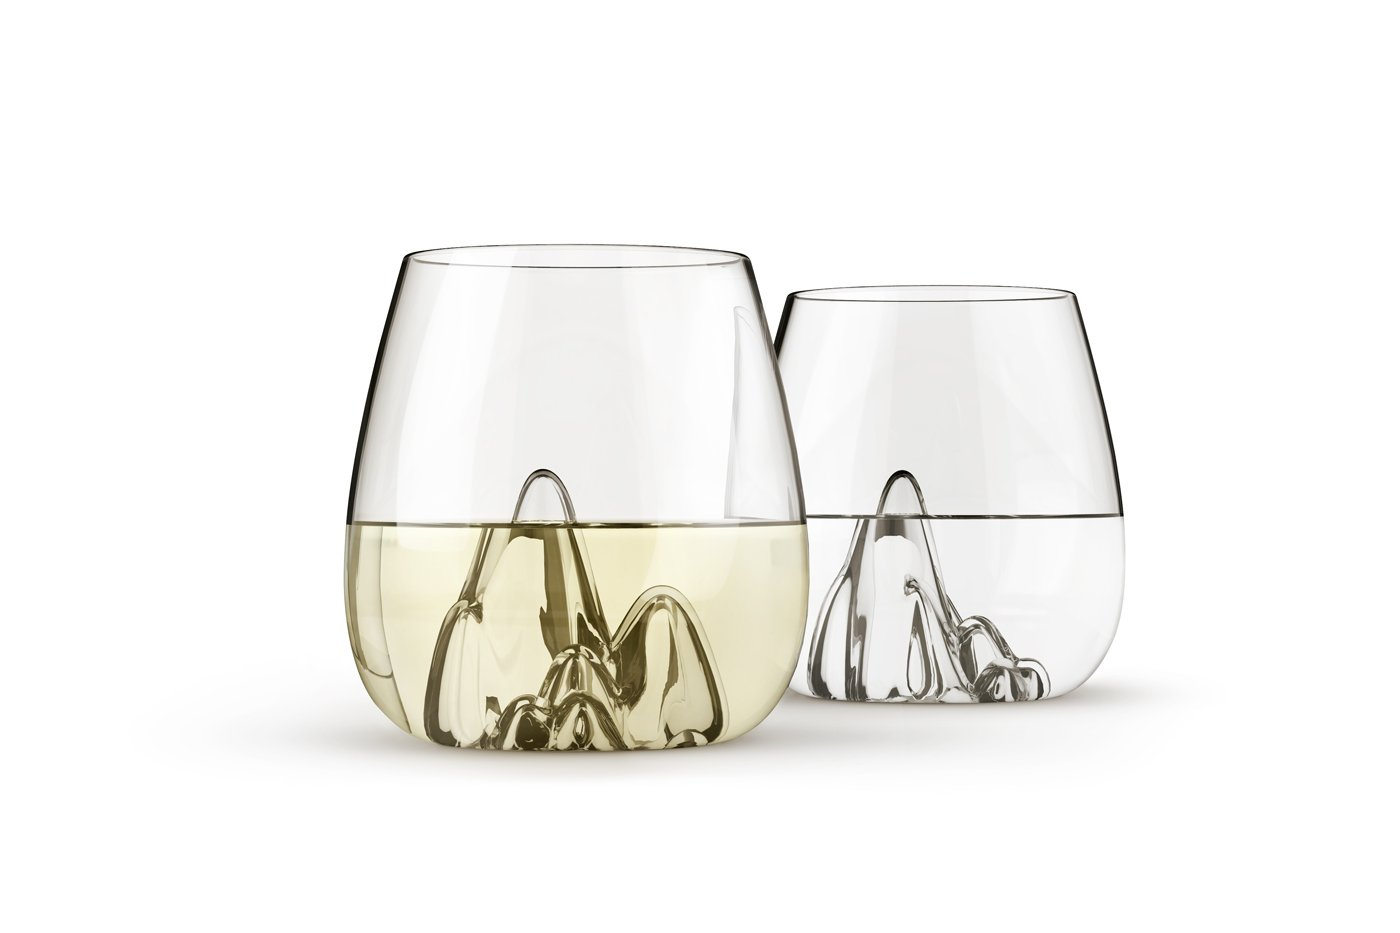 Escape, Hand Blown Glass Tumblers by Aruliden – Set of 4 -23820